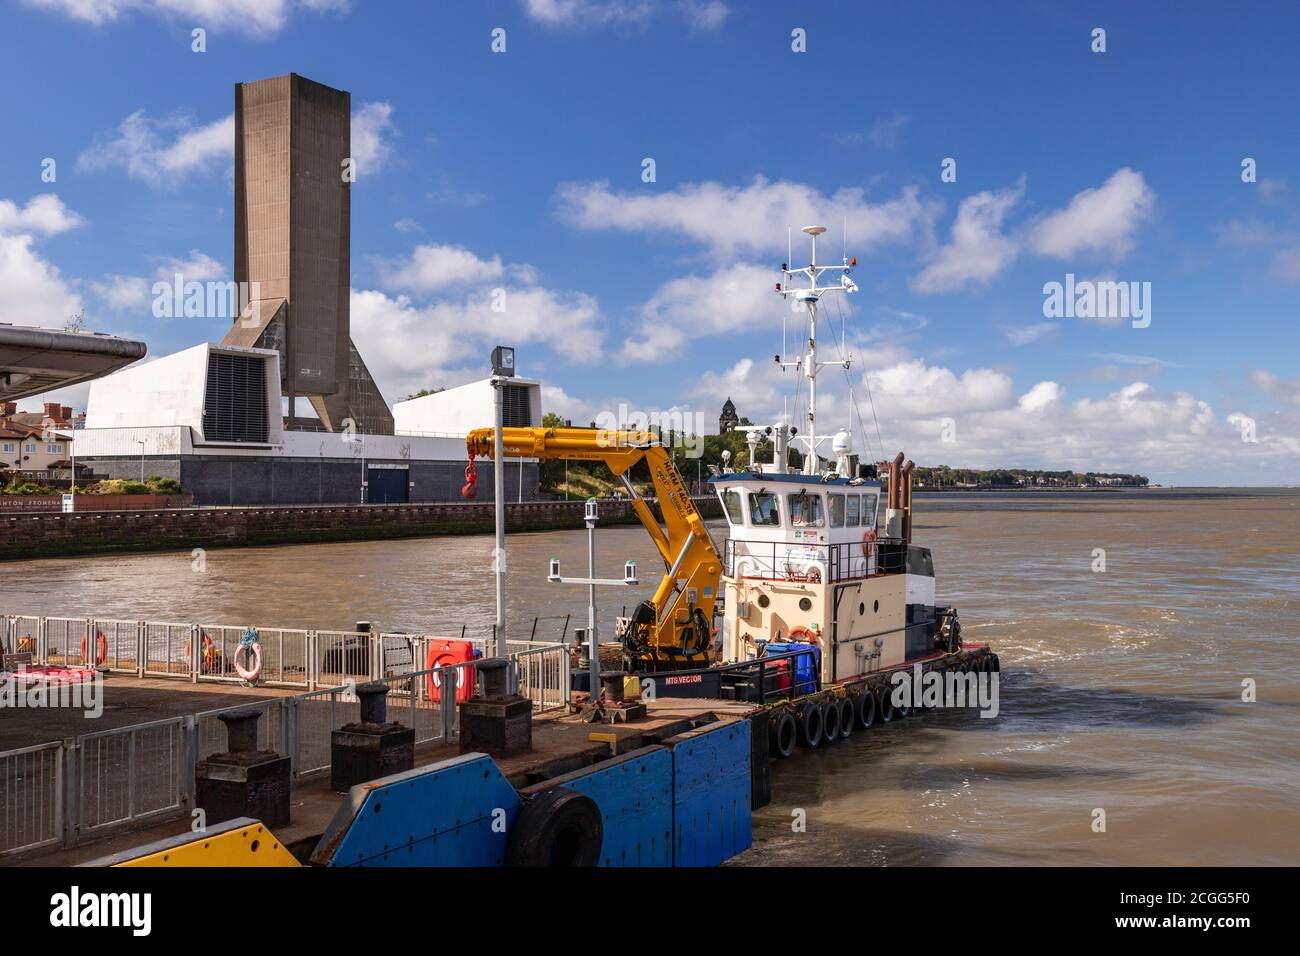 Kingsway Mersey Tunnel ventilation tower, Seacombe, Wirral, Merseyside, England Stock Photo